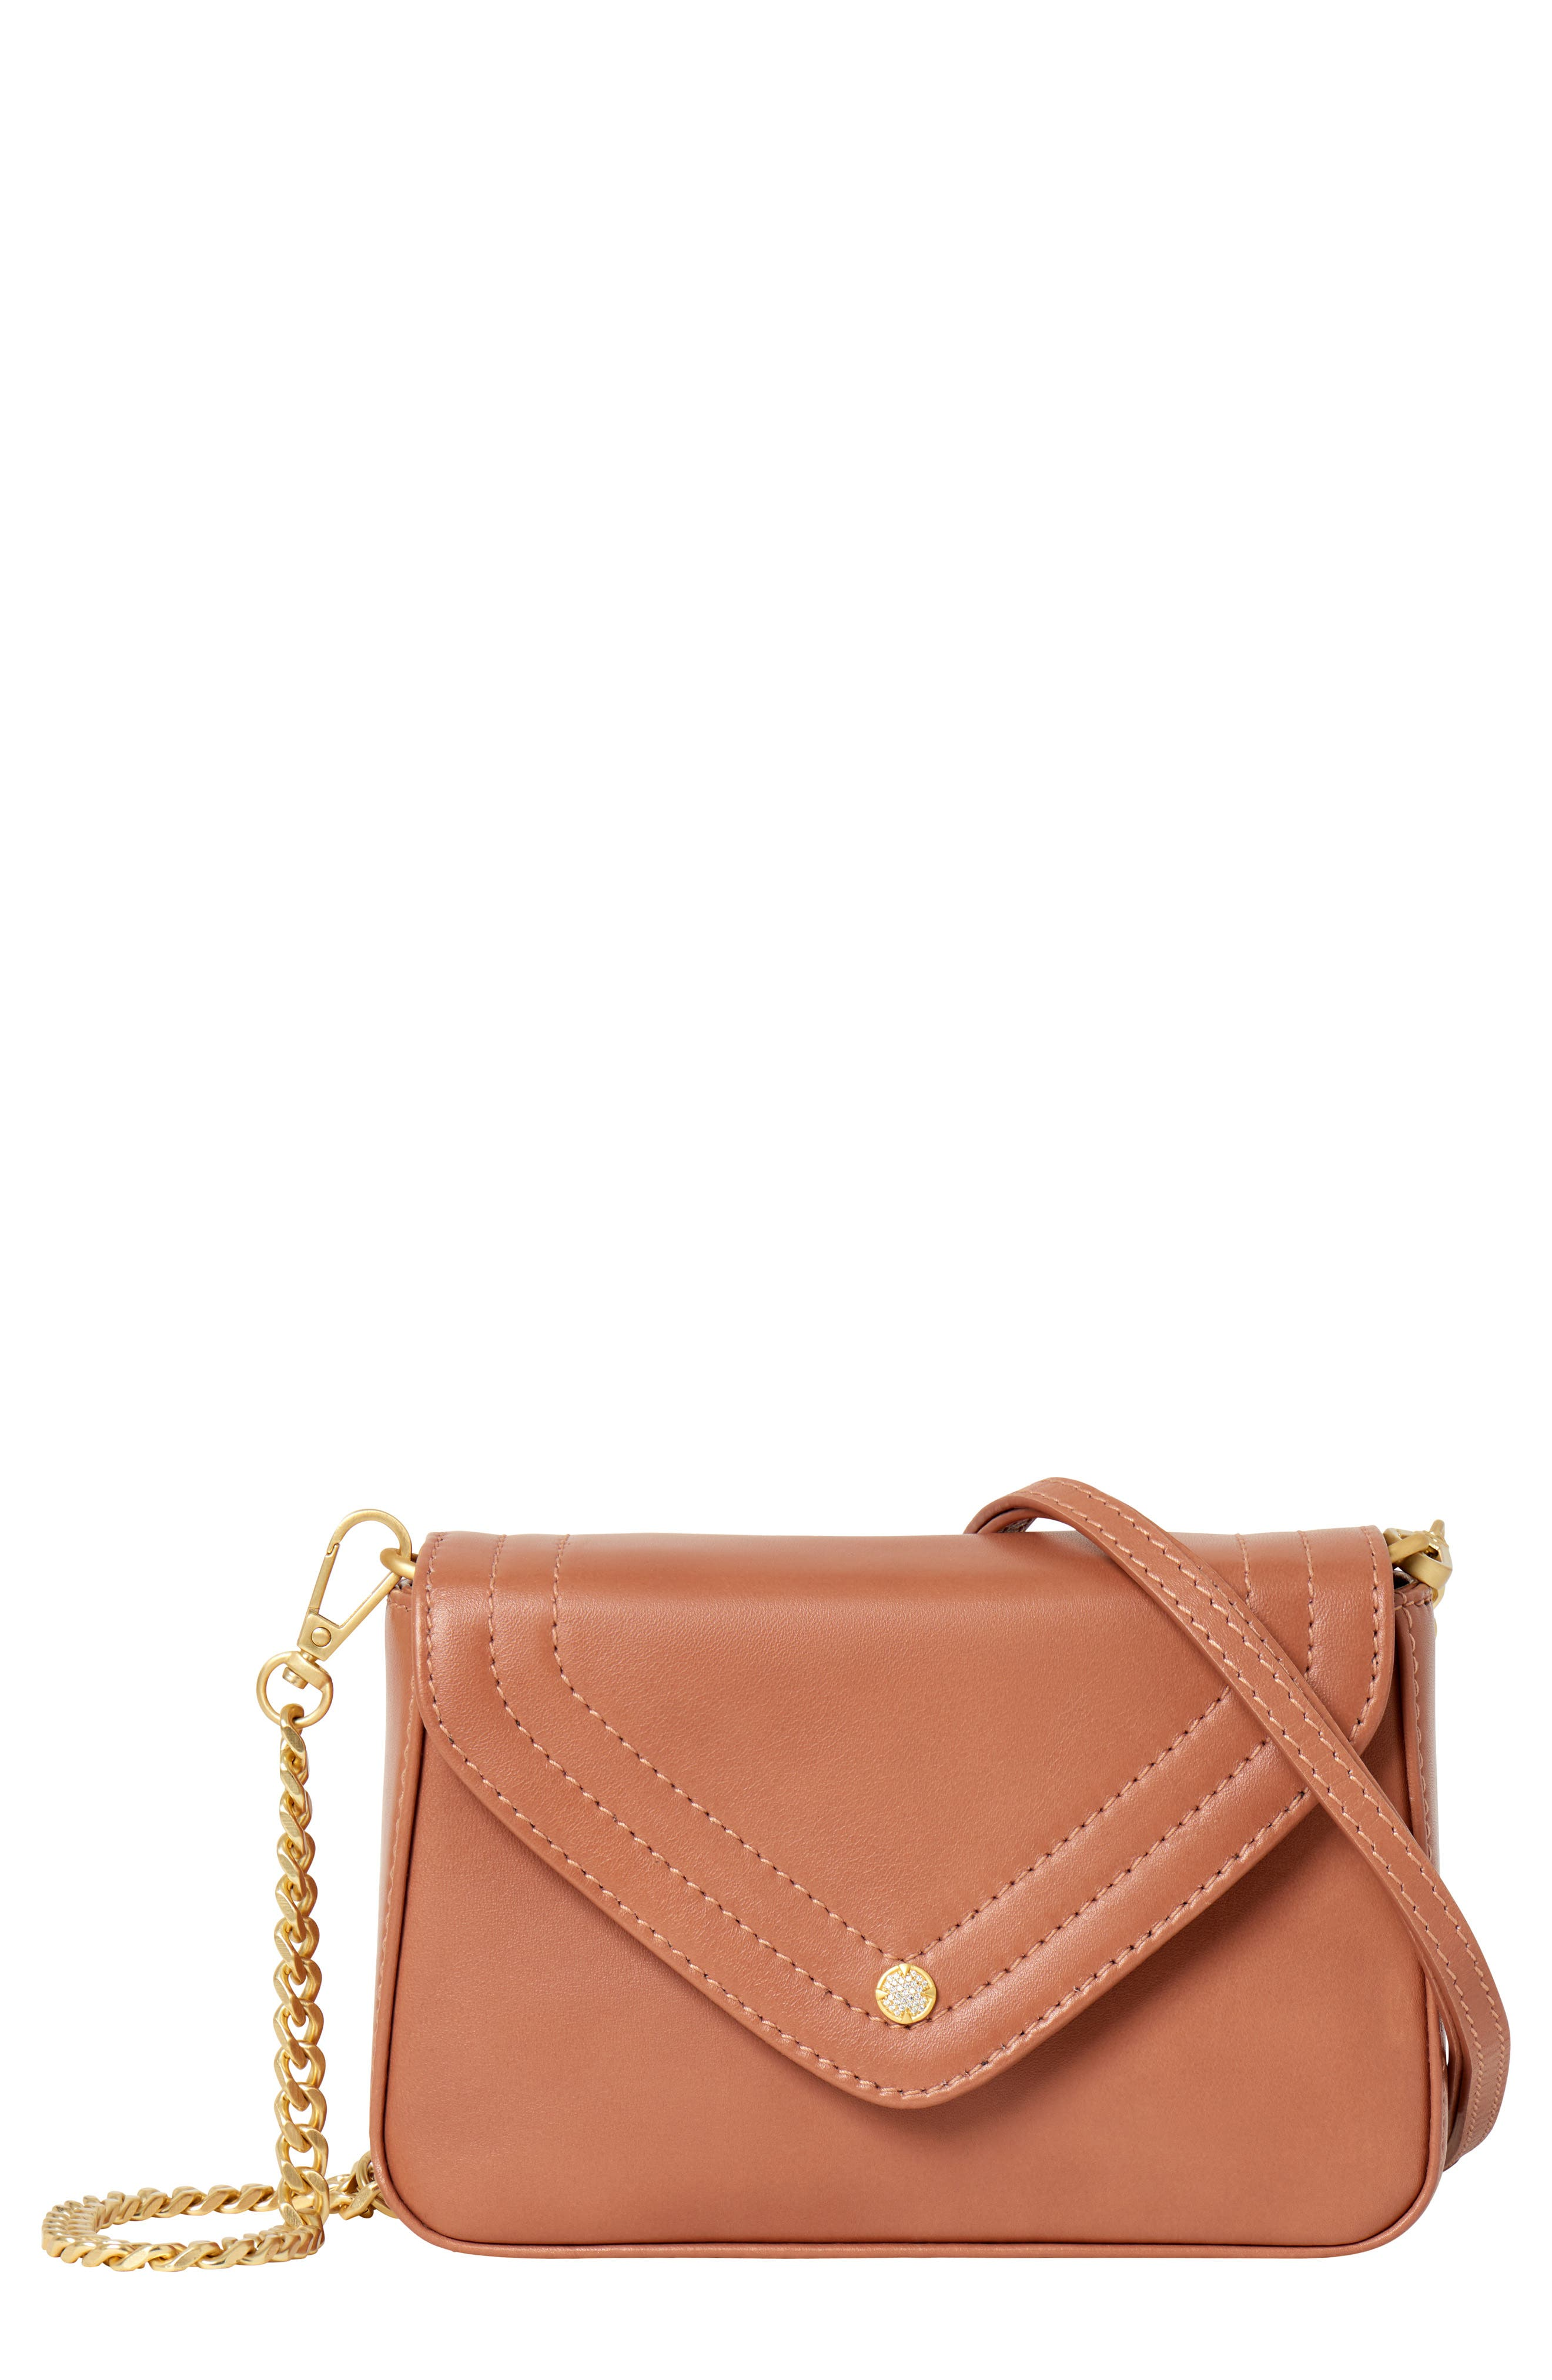 Maiden Leather Crossbody Bag,                             Main thumbnail 1, color,                             ROSE